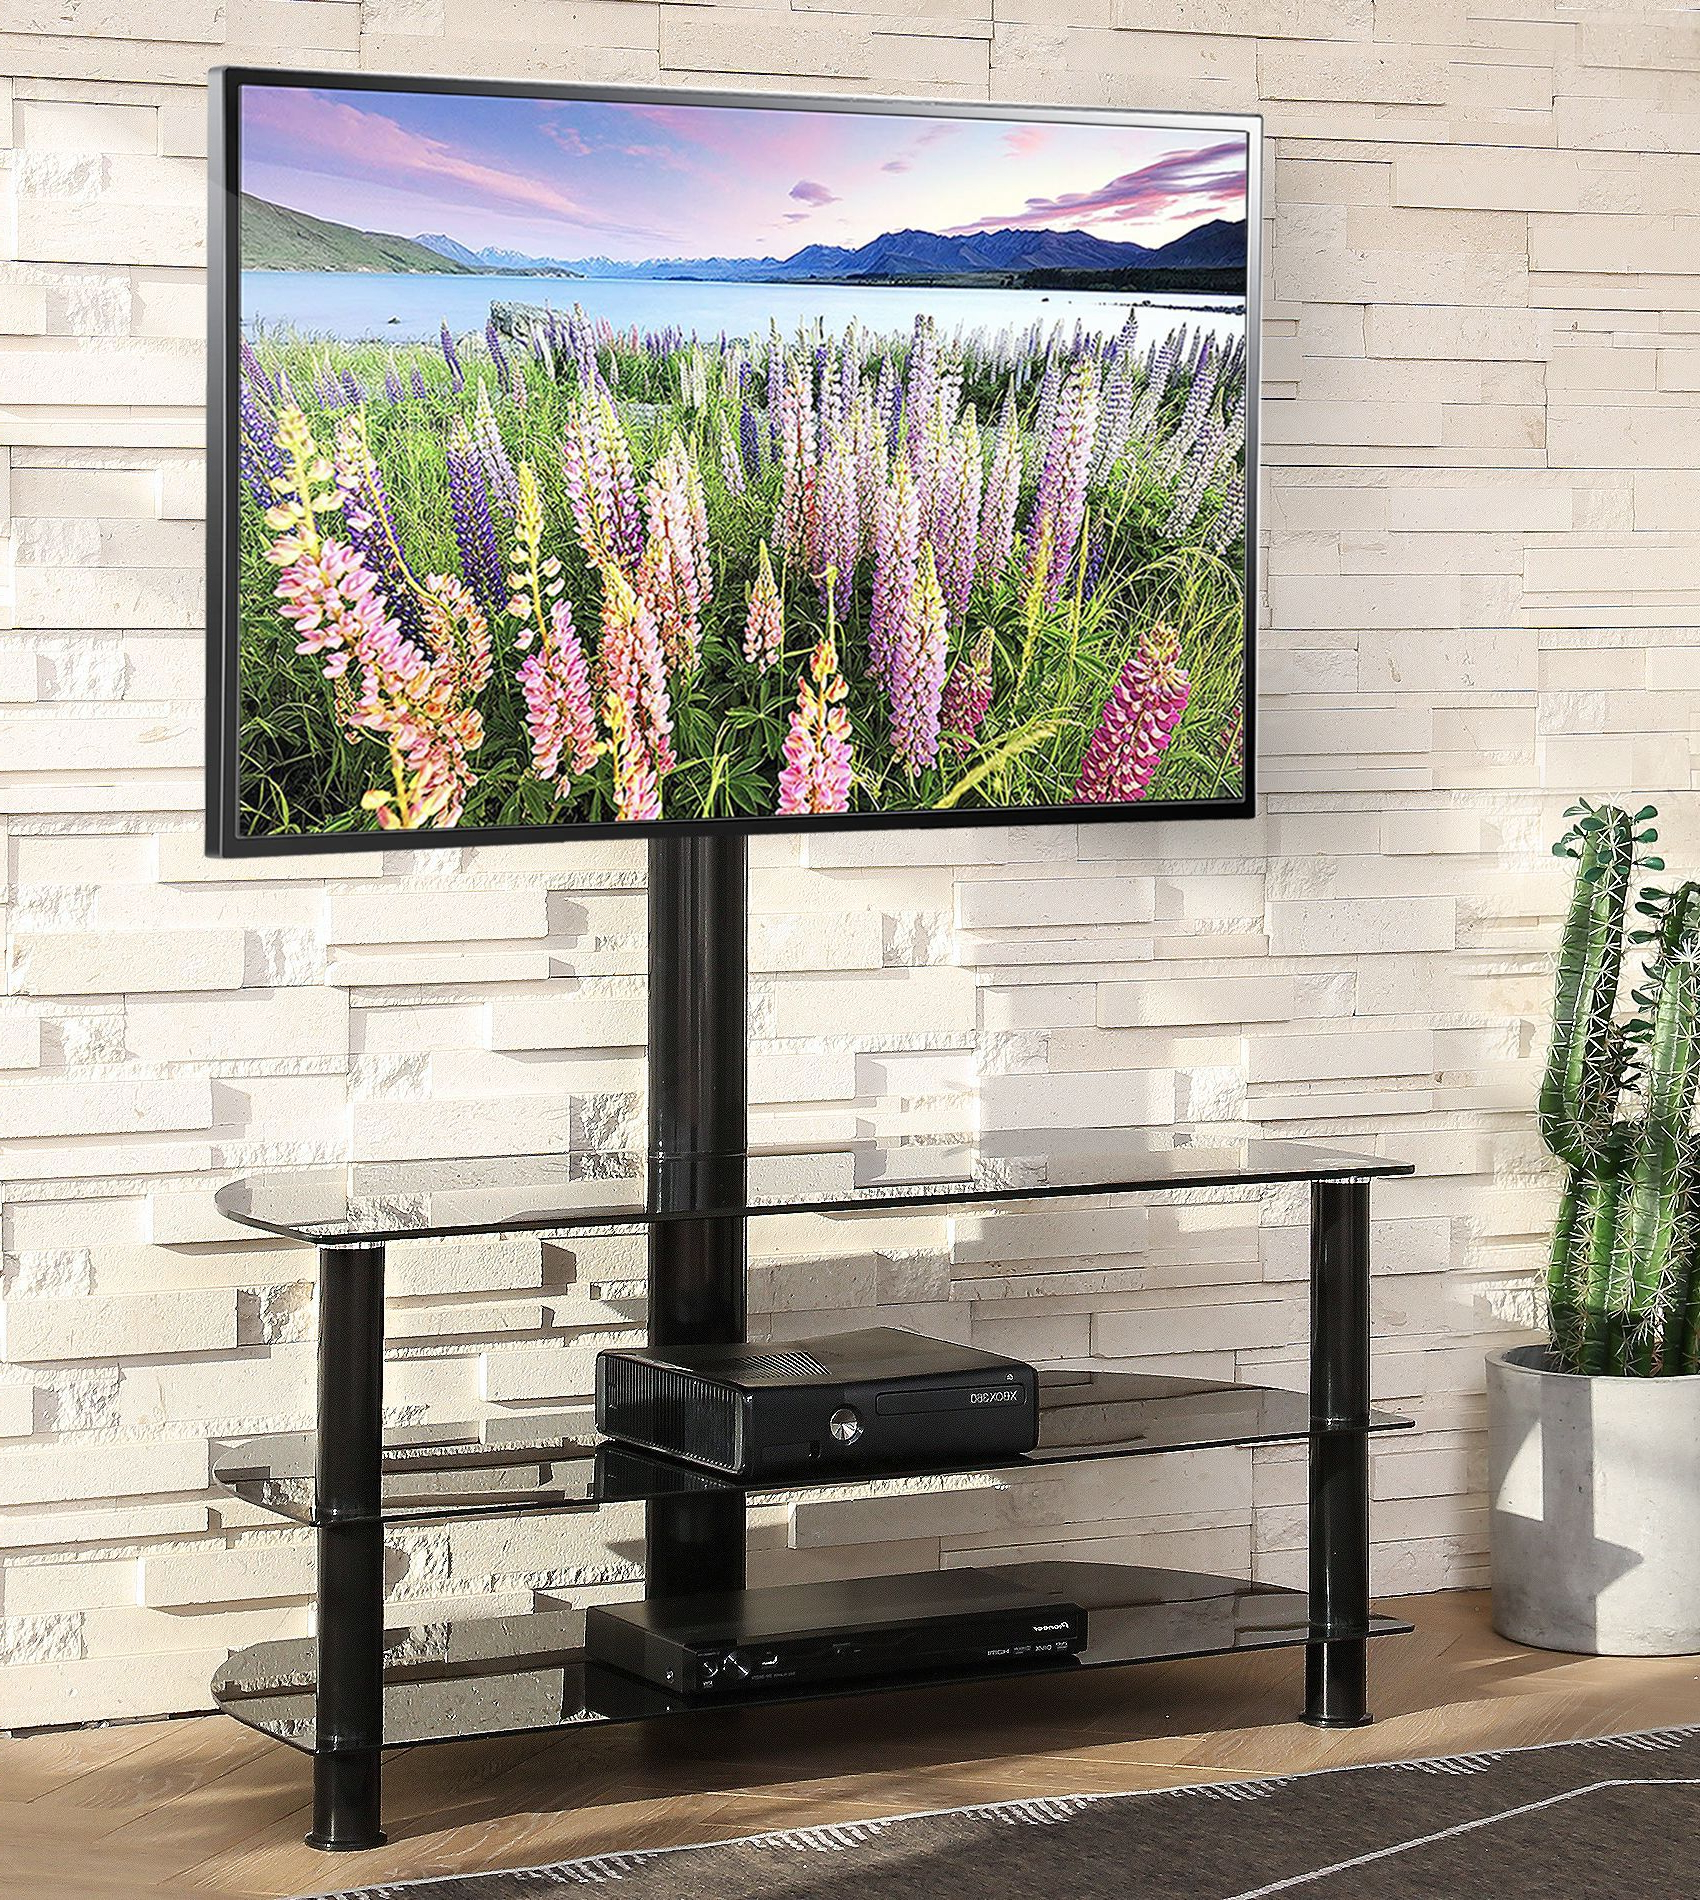 Swivel Floor Tv Stand With Mount, Height Adjustable 3 In 1 Throughout Modern Floor Tv Stands With Swivel Metal Mount (View 6 of 20)